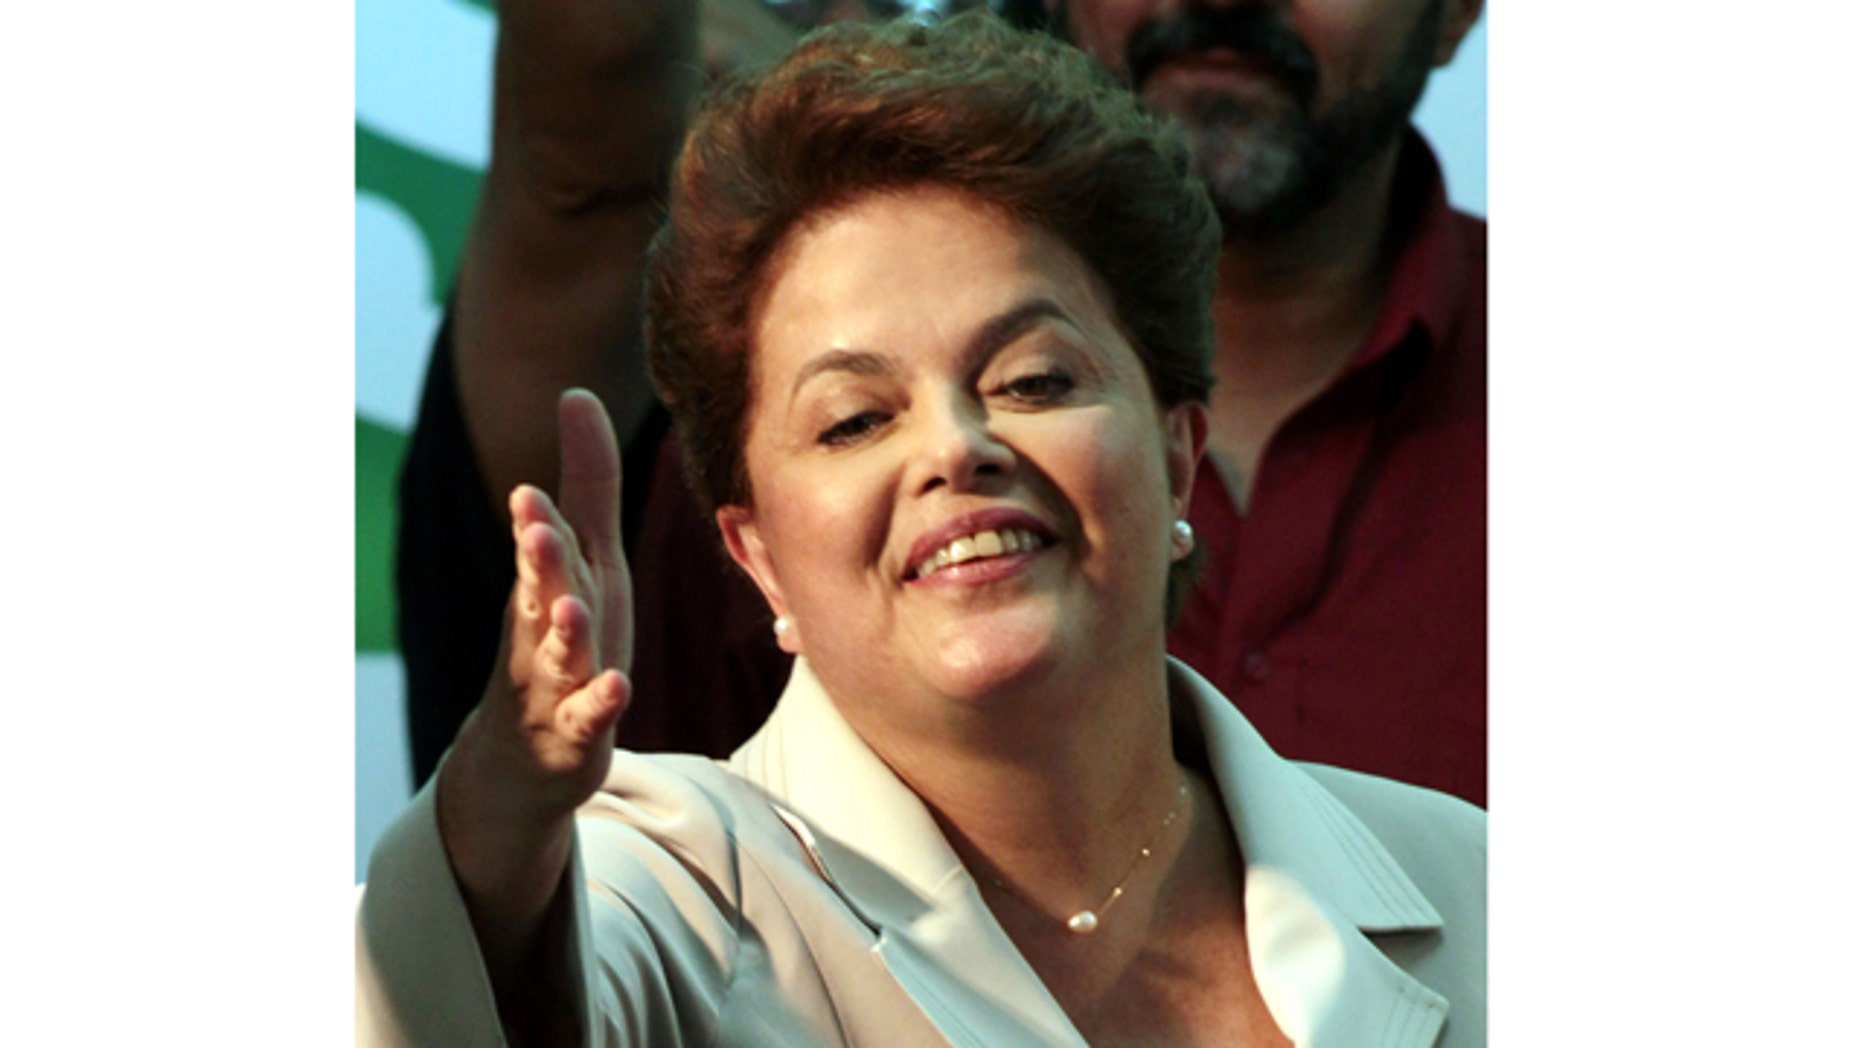 Oct. 31: Brazil's President-elect Dilma Rousseff, of the Workers Party, gestures to supporters as she arrives to give her victory speech after winning the election runoff in Brasilia, Brazil.